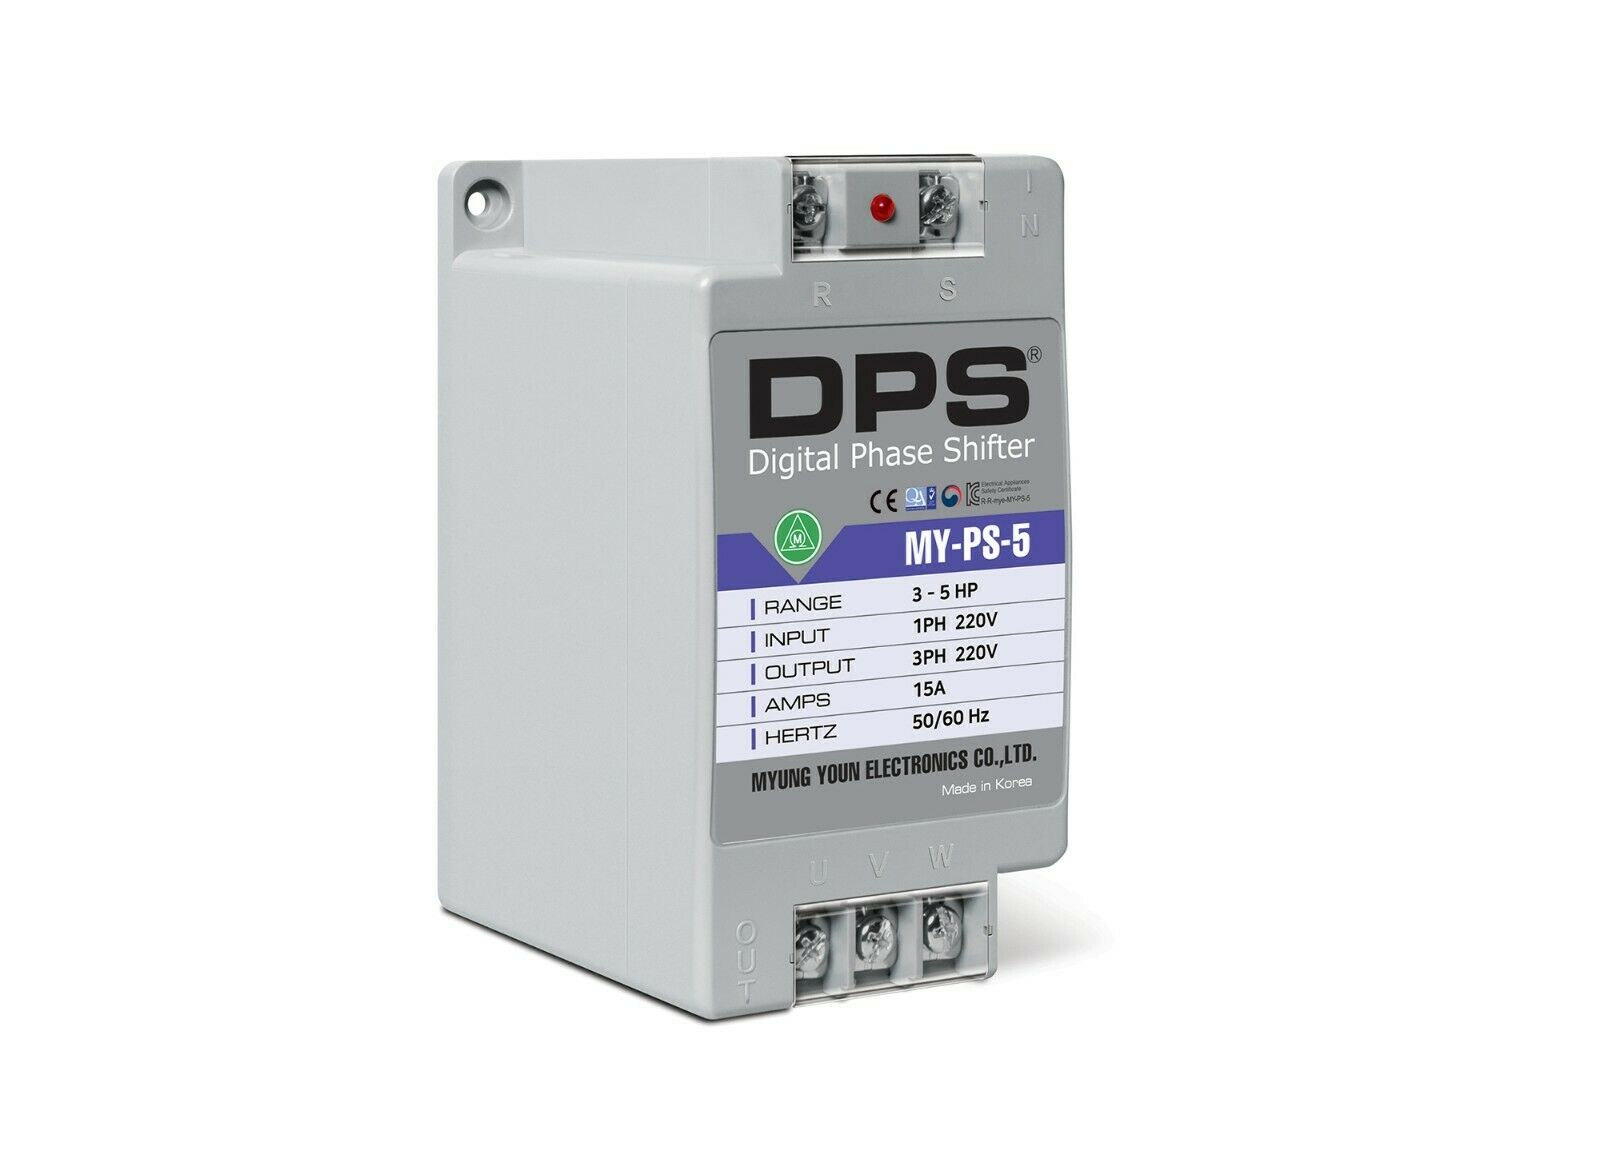 1 Phase to 3 Phase Converter, MY-PS-5, Best for 3HP(2.2KW) 9 Amp 220-240V Motor